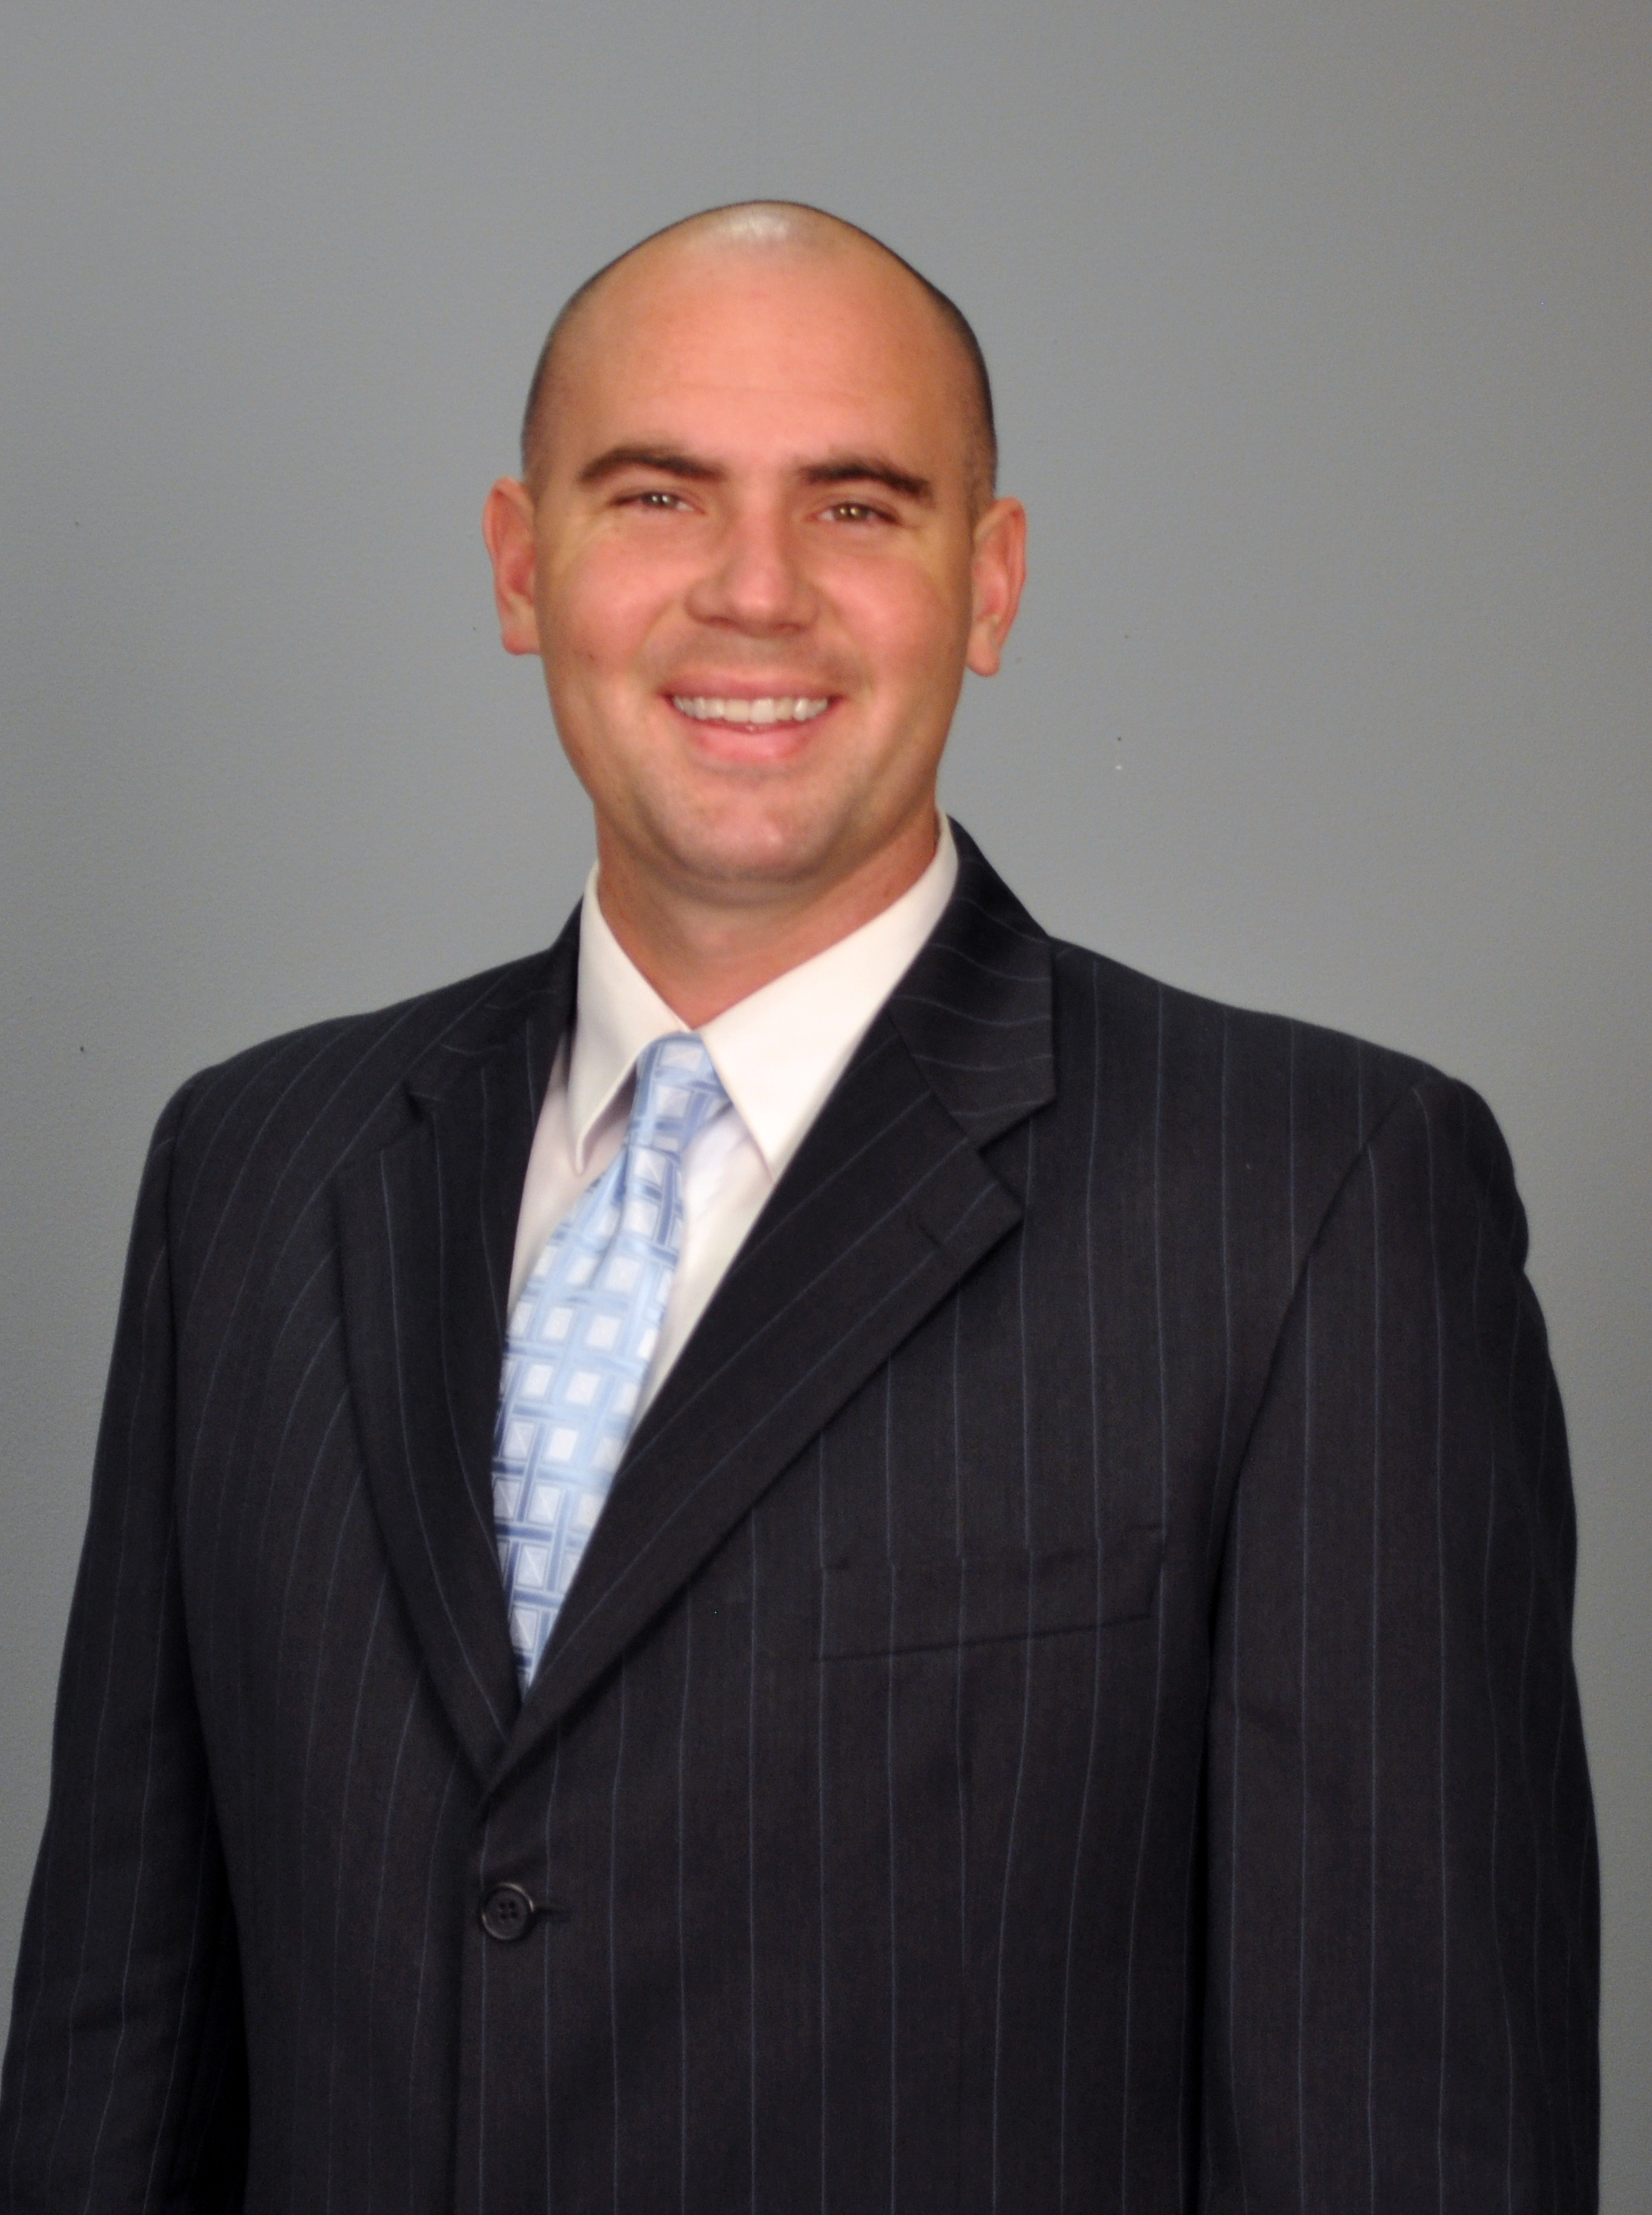 dave glover,   Insurance Agent      Representing American National